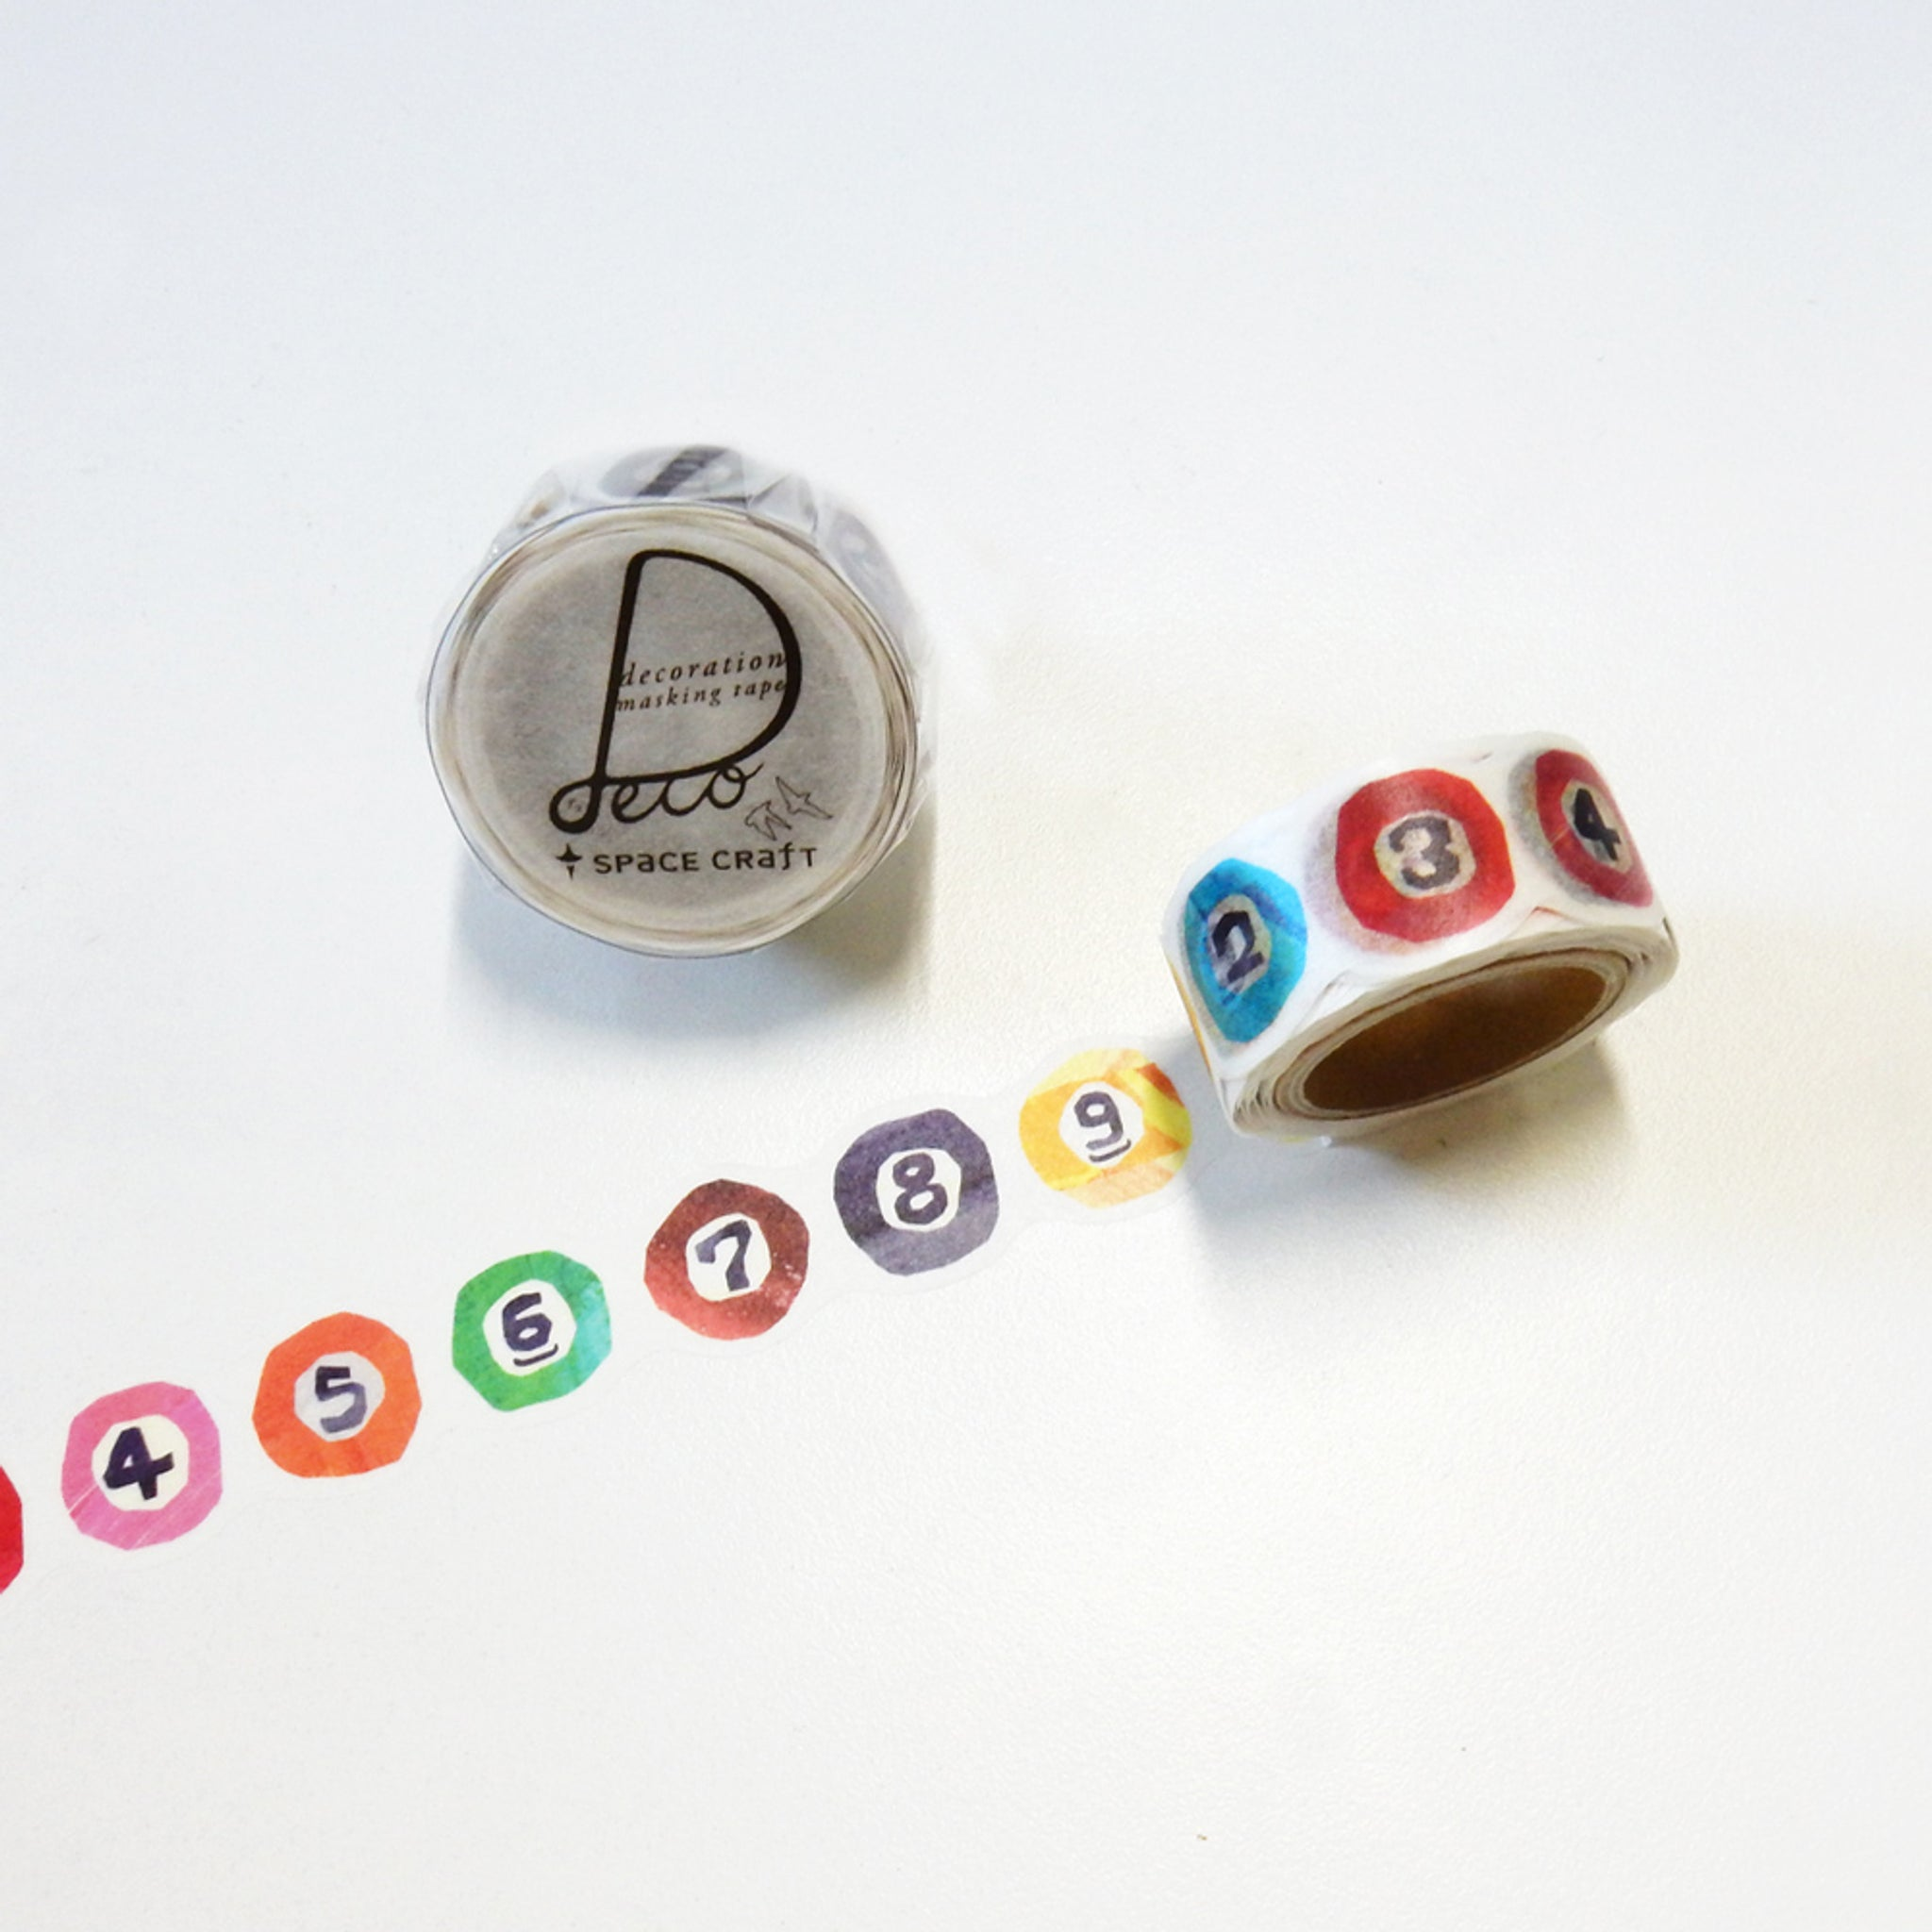 Round Top x Space Craft Washi Tape 9-Ball